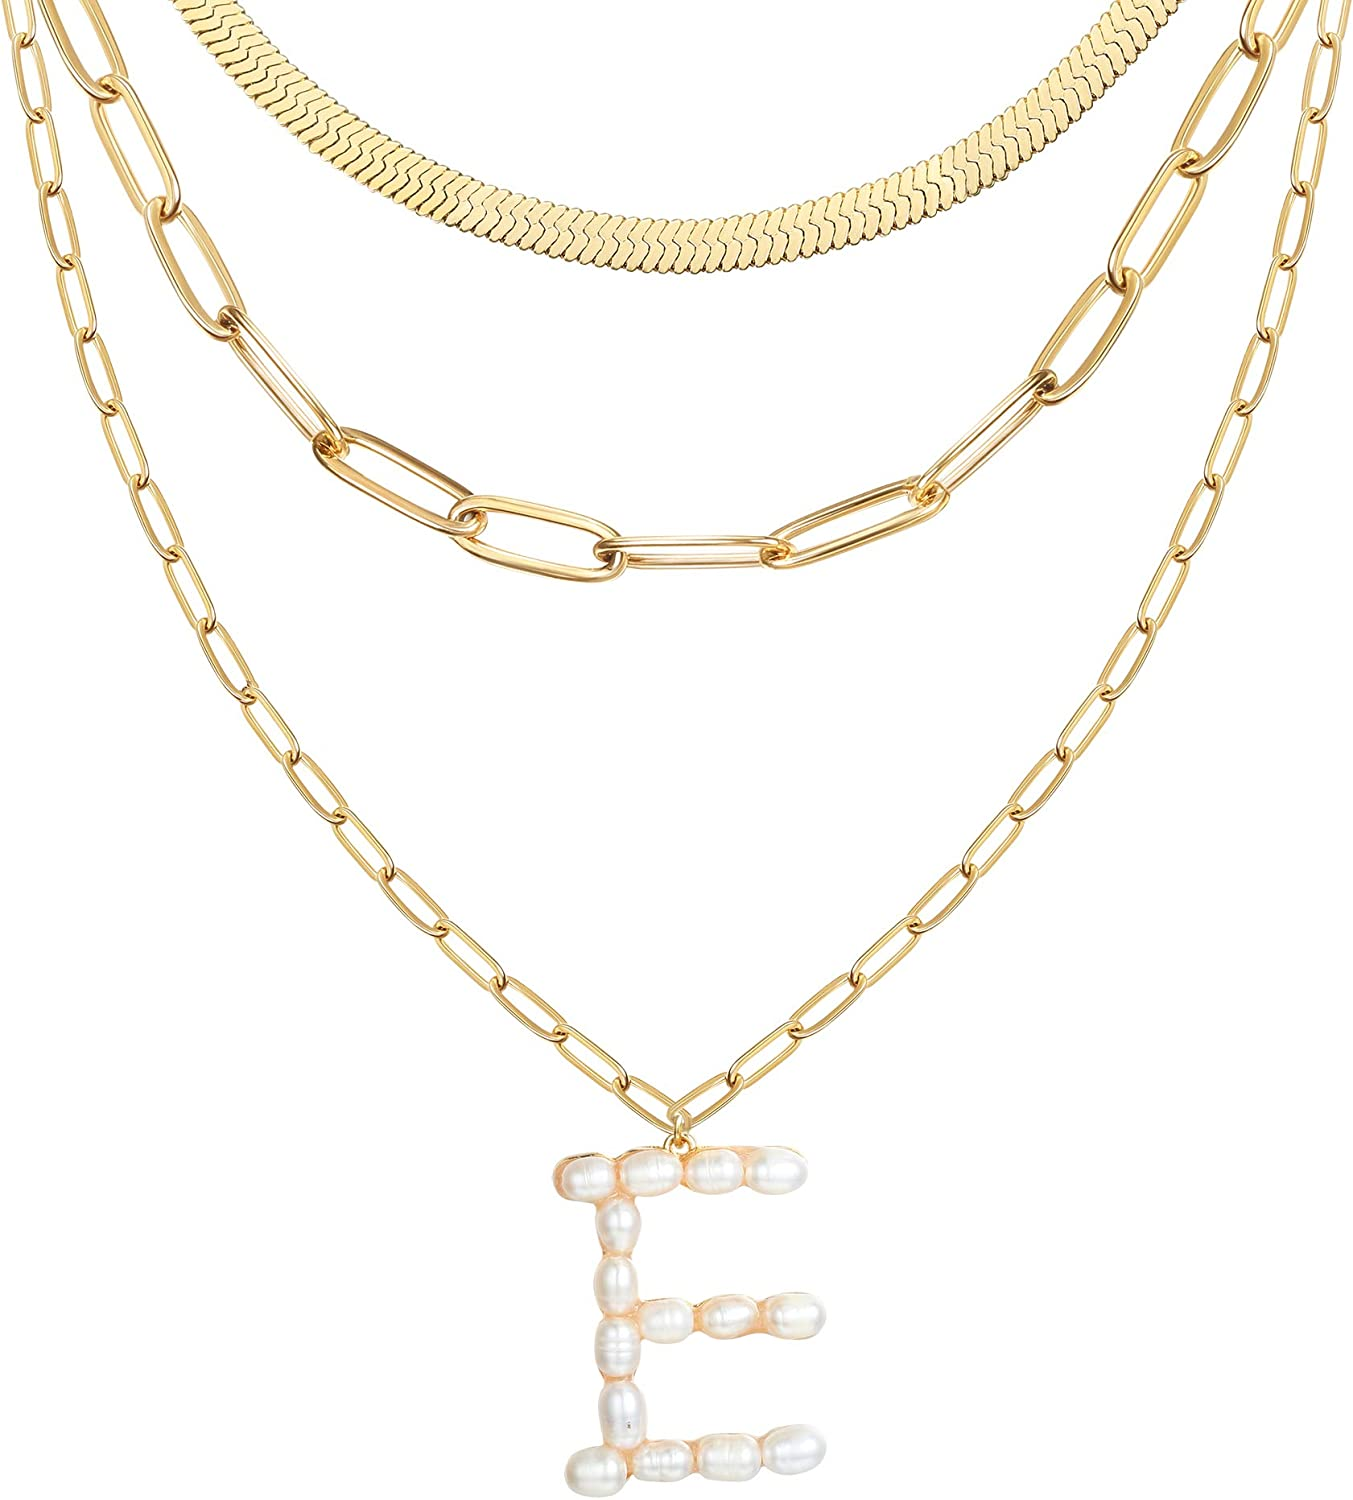 XCOIN Pearl Big Initial Pendant Necklace Gold Dainty Layered Chain Necklace Multilayer Sweater Large Letter Necklace Set for Women